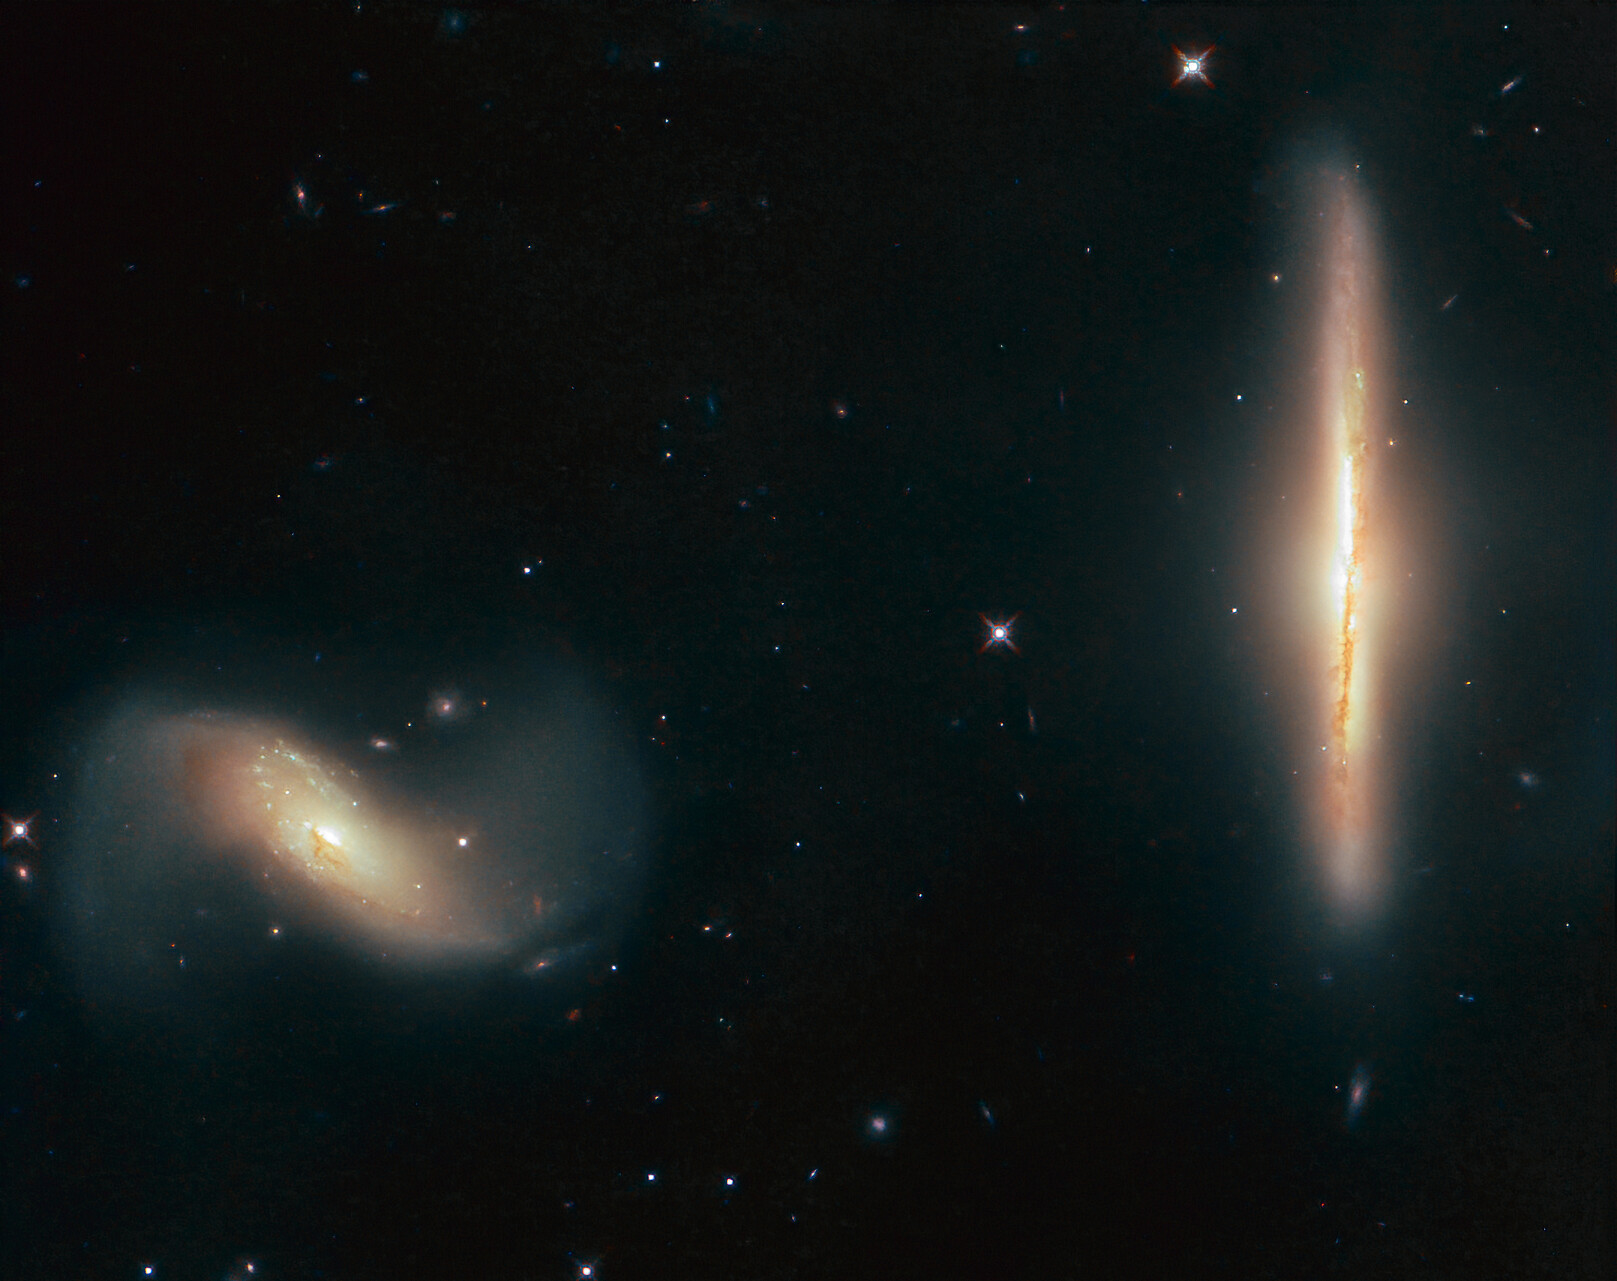 Hubble catches galactic pair locked in a gravitational dance